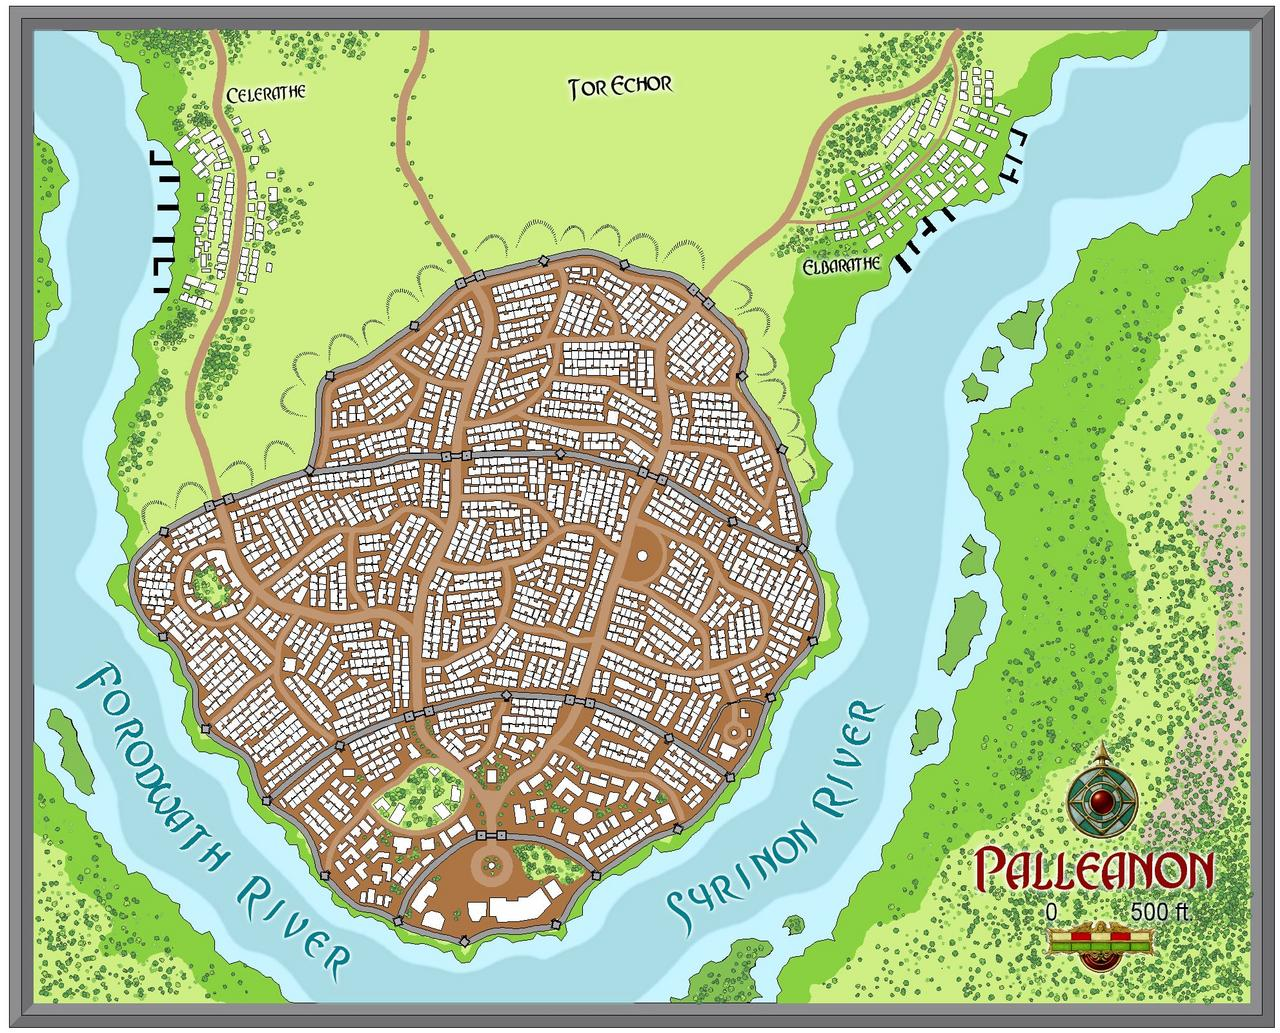 The City of Palleanon